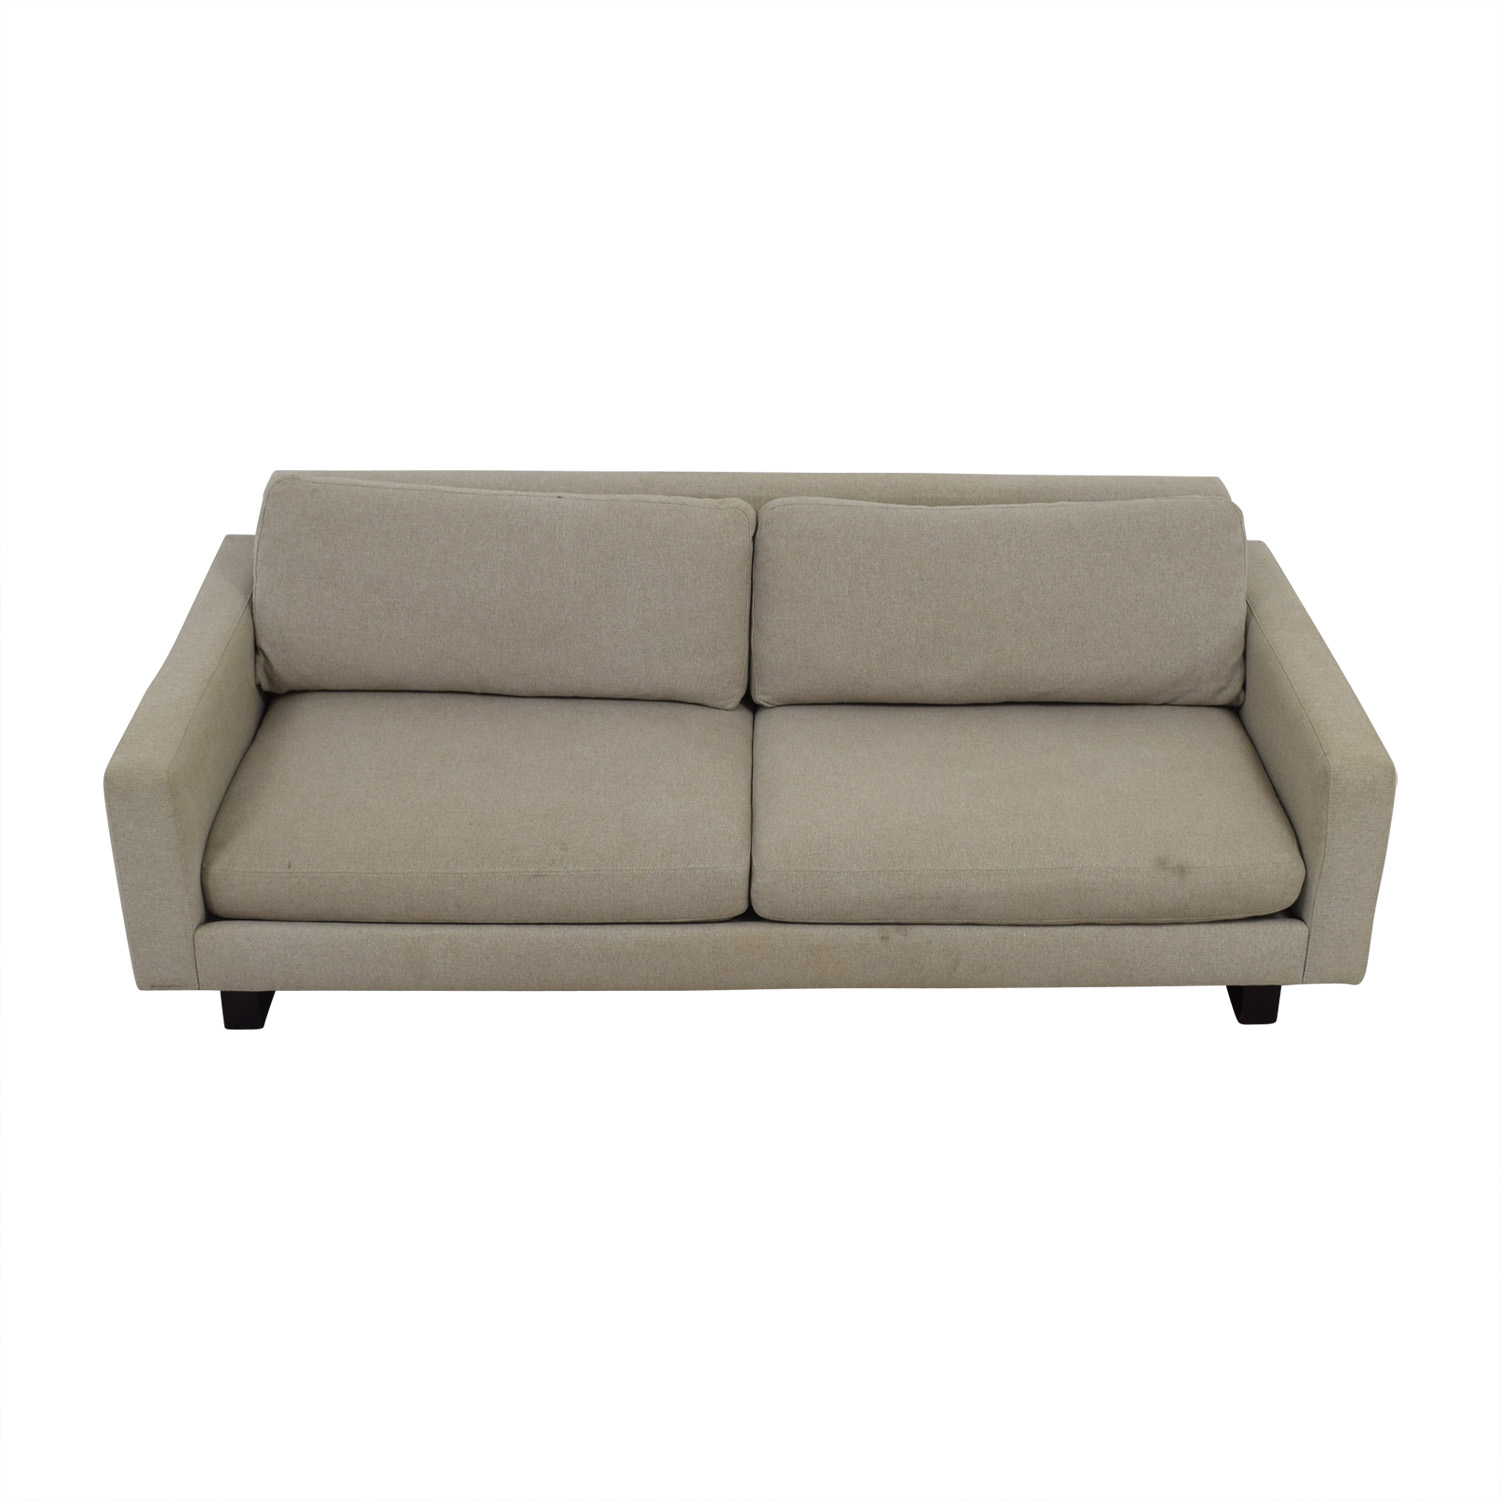 room and board hess sofa review centre ashton in makerfield classic sofas used for sale